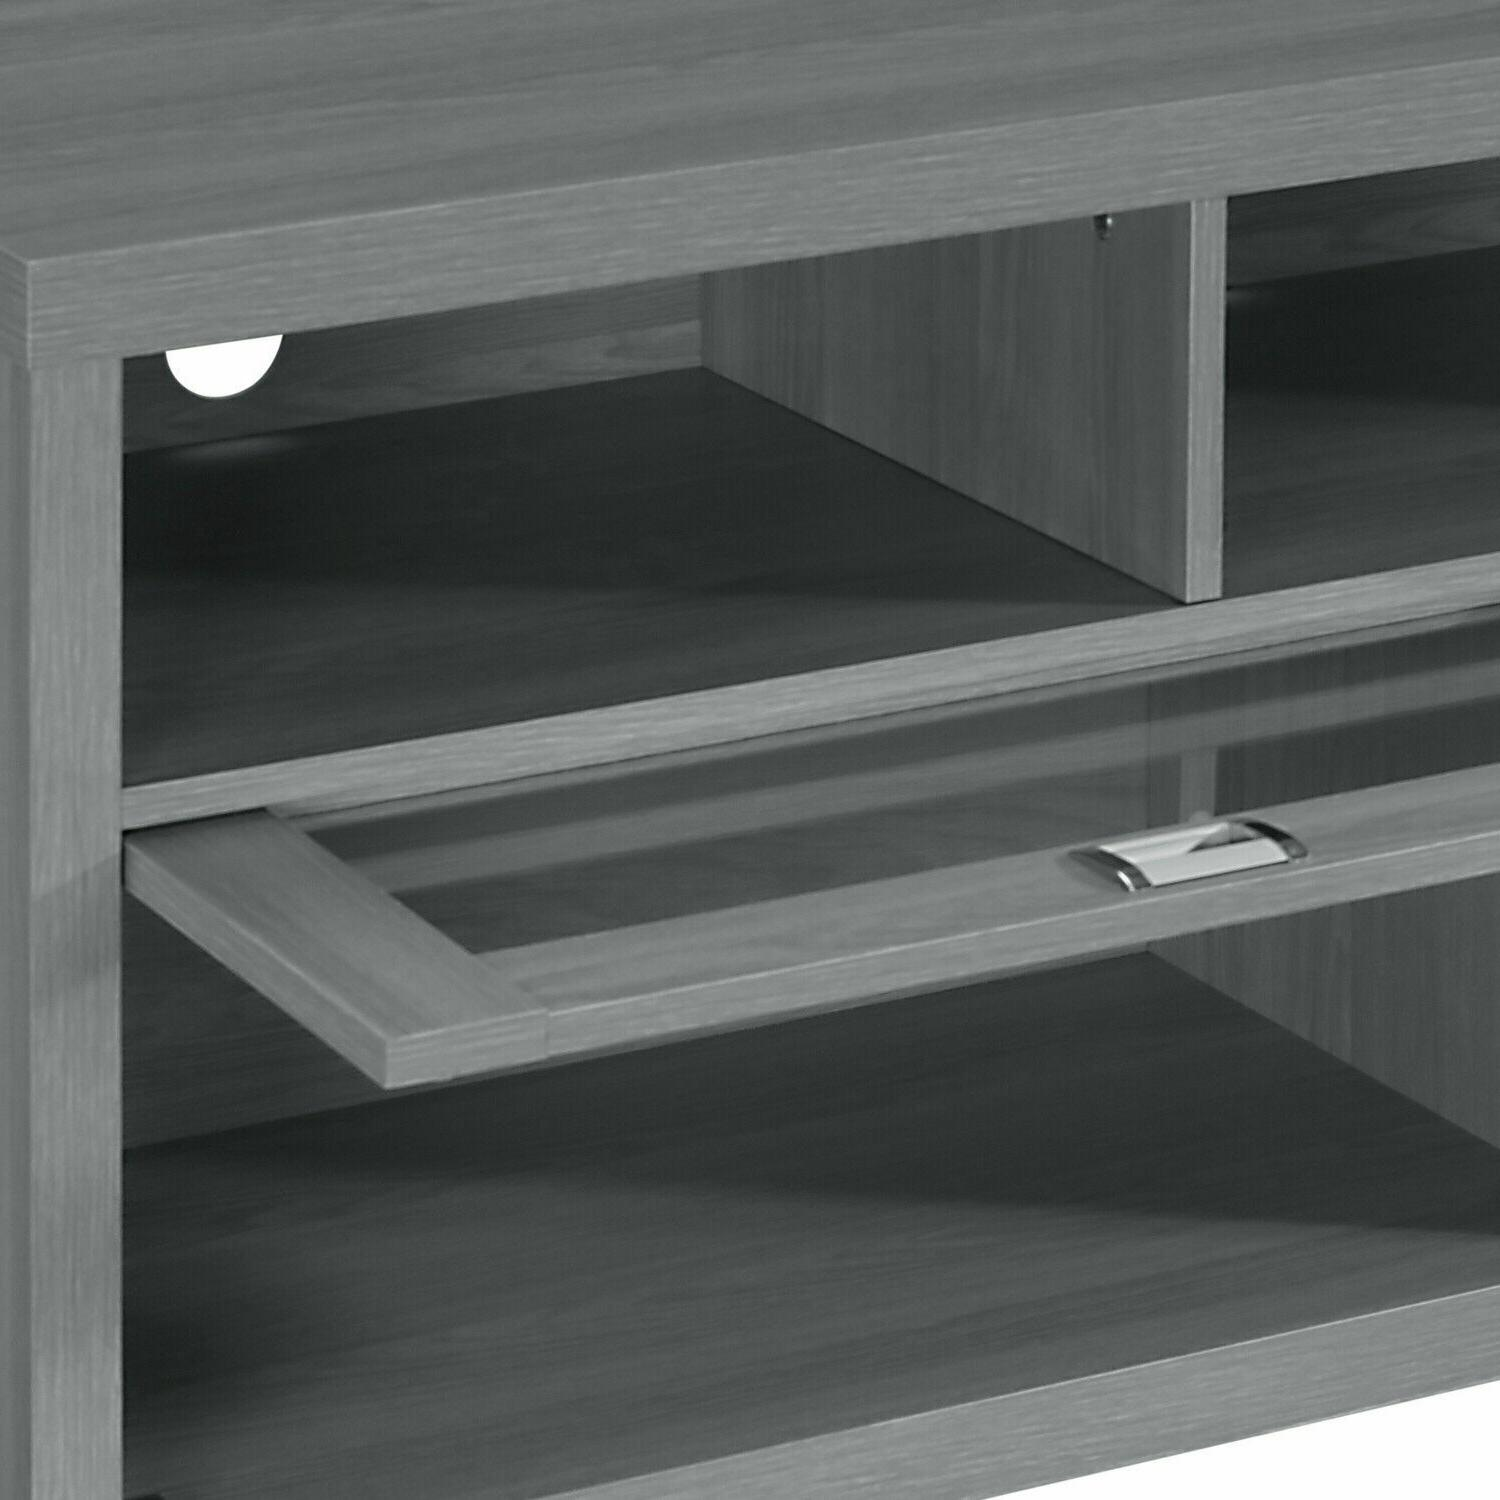 Flat TV Stand up 75 Inch 50 70 Center